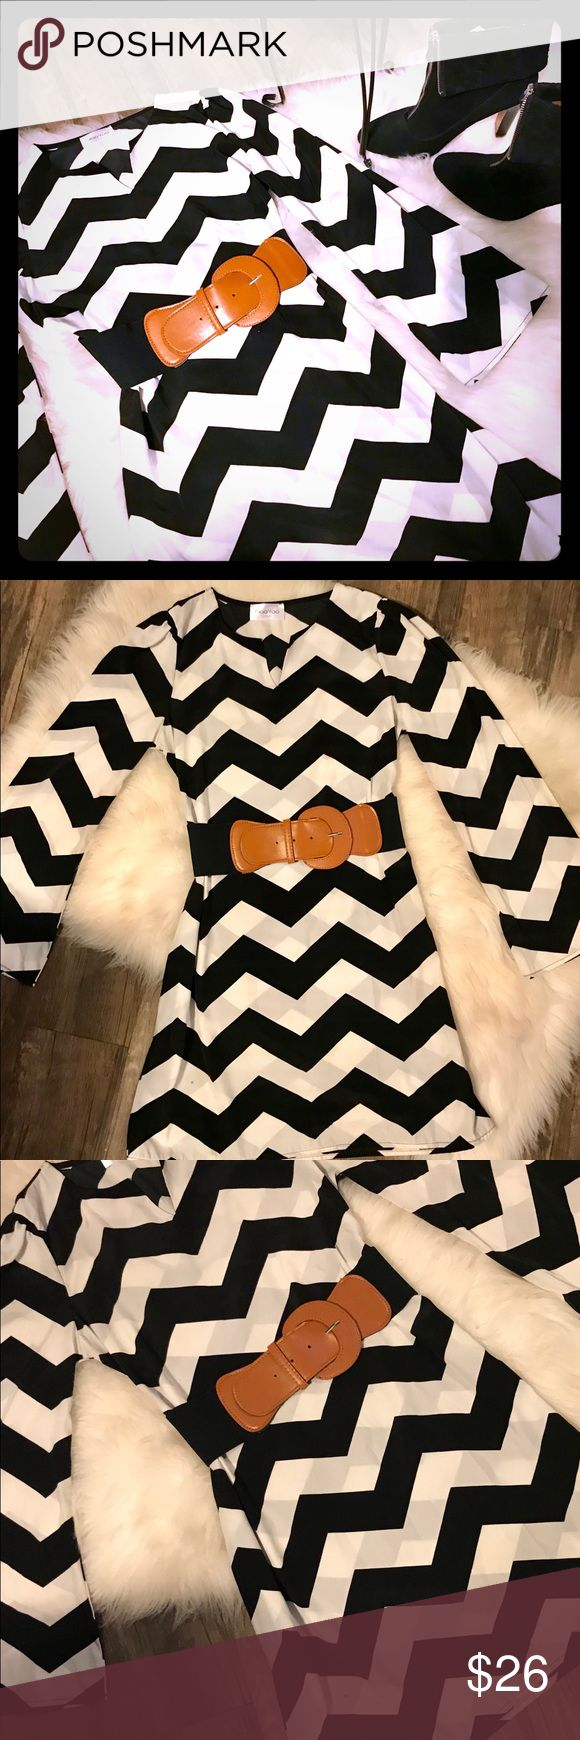 🌼Black/White Chevron Boutique Dress🌼 Bought from local boutique - V-Neck with bell sleeves & puckering on each shoulder. Looks AMAZING with black tights & the FINE suede Coach boots sitting right next to the dress!!!  💝💕💗 Dresses Long Sleeve